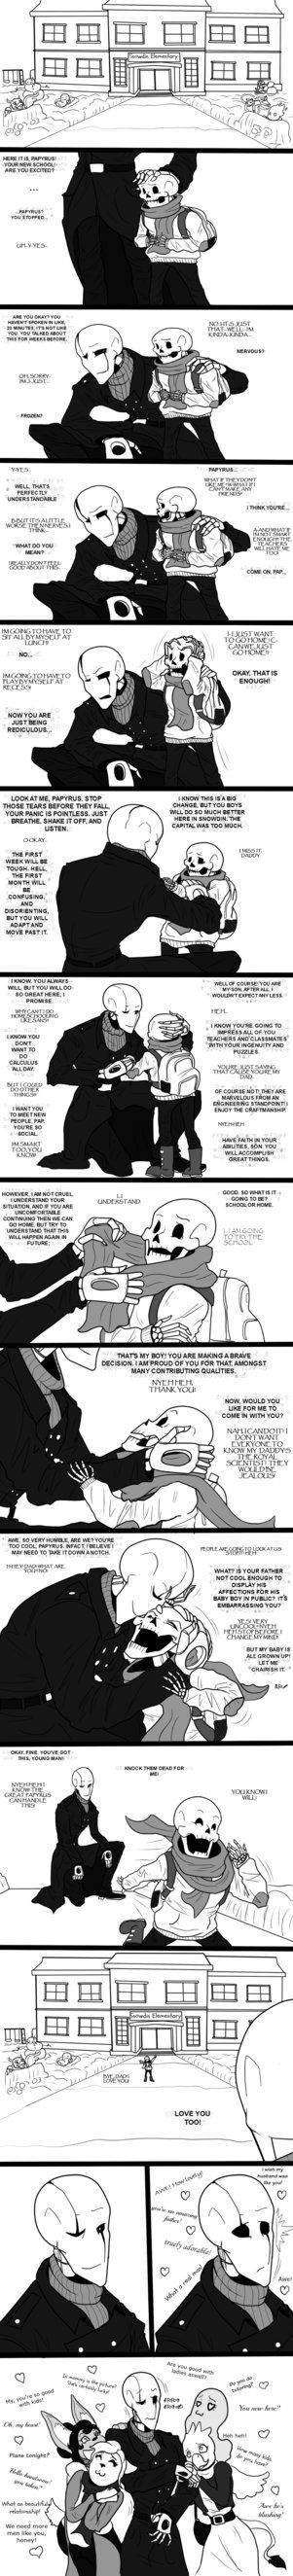 Dadster and Papyrus comic - this is so cute!!!!!<<I love the comics where Gaster is a good dad to Sans and Papy